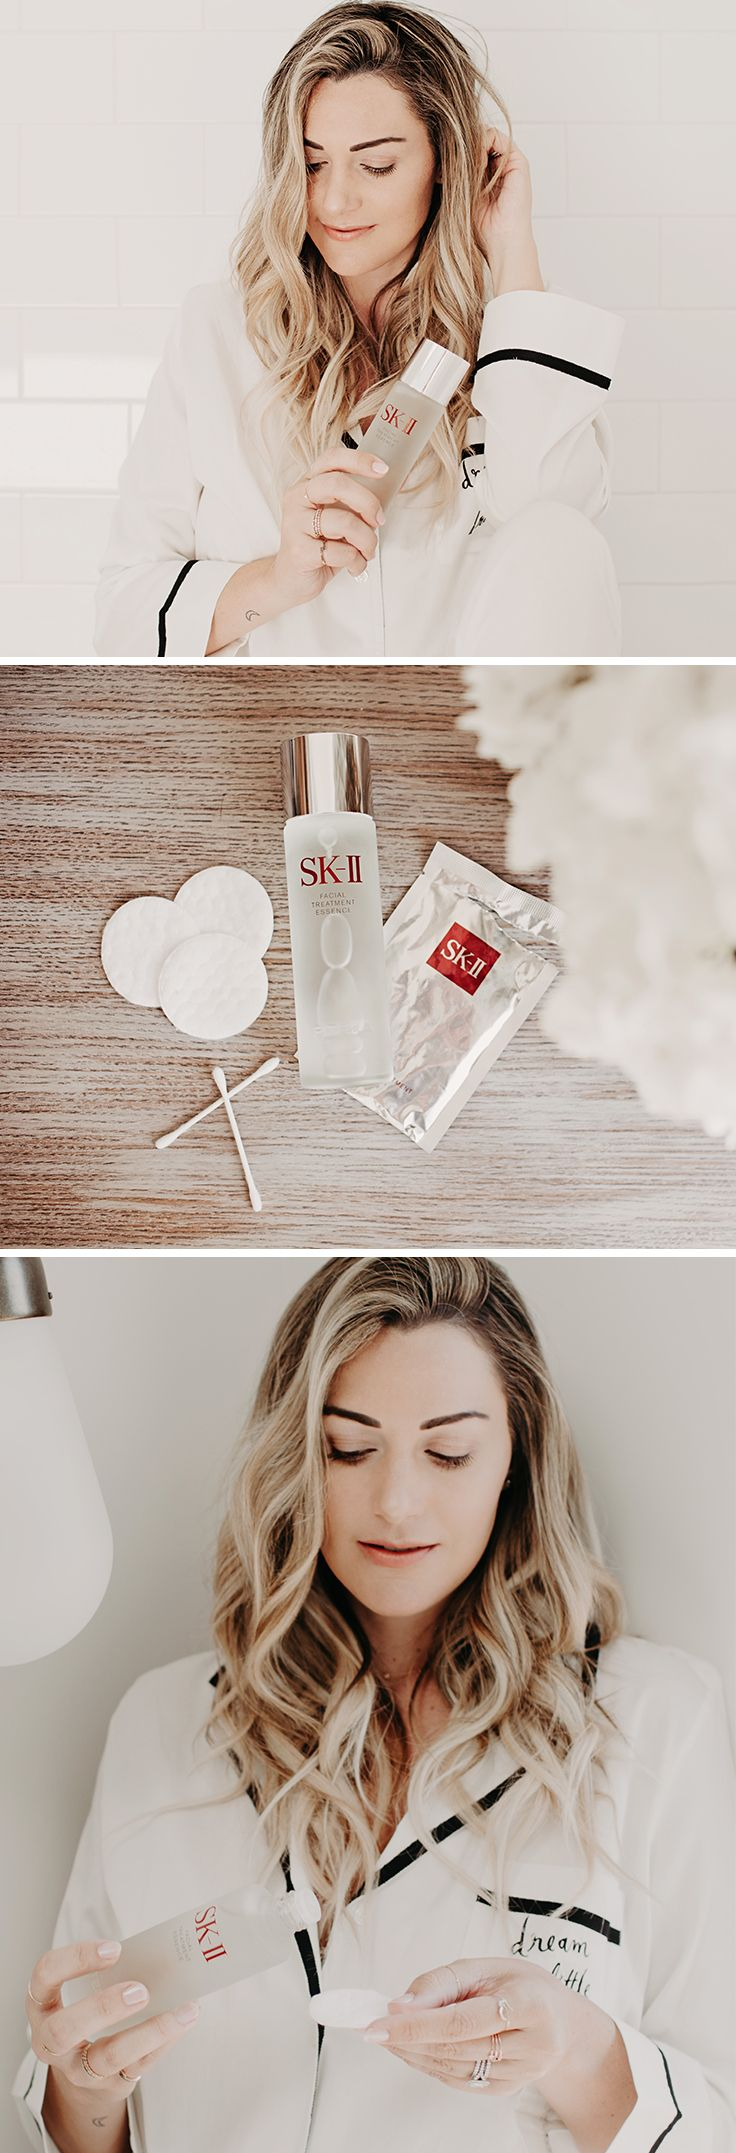 "Blogger Caitlin Lindquist, of Dash of Darling, is obsessing over her new skin care secret weapon, SK-II Facial Treatment Essence. She's maintaining that ""pregnancy glow"" long after her daughter was born by incorporating this best-seller into her daily regimen. Learn more about how she's getting her glowing skin on the blog."